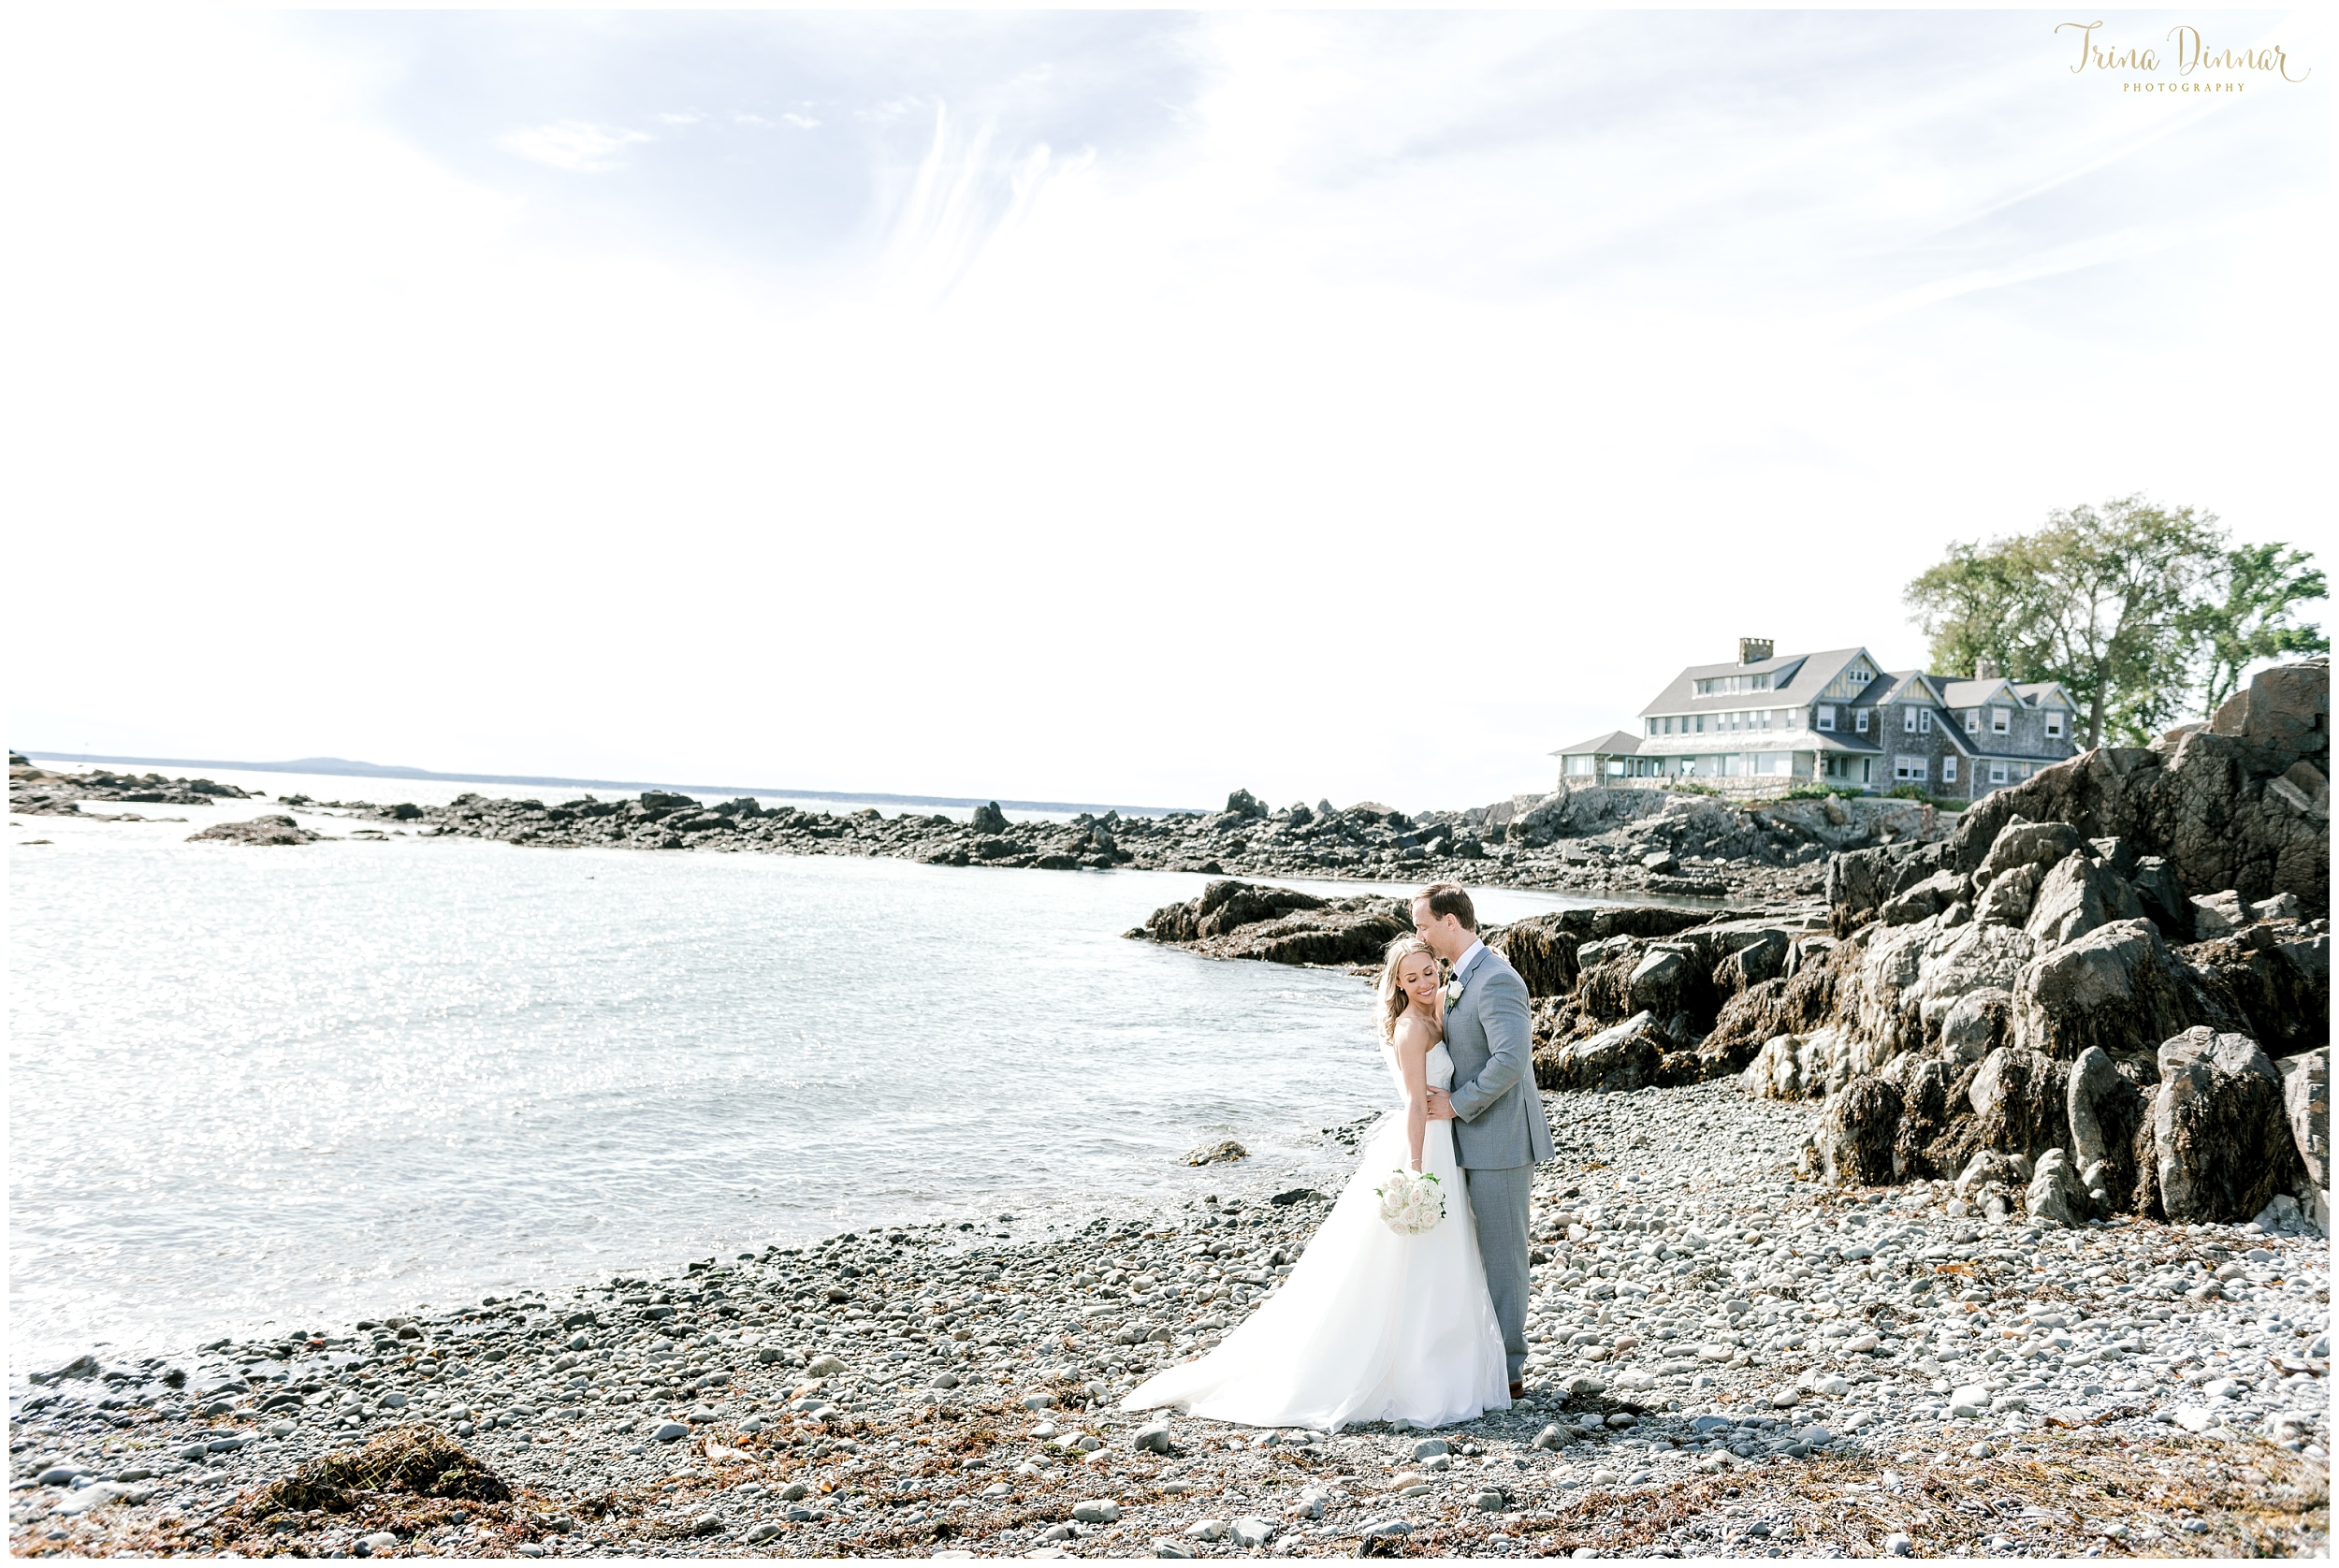 Wedding Photography in Kennebunkport Maine